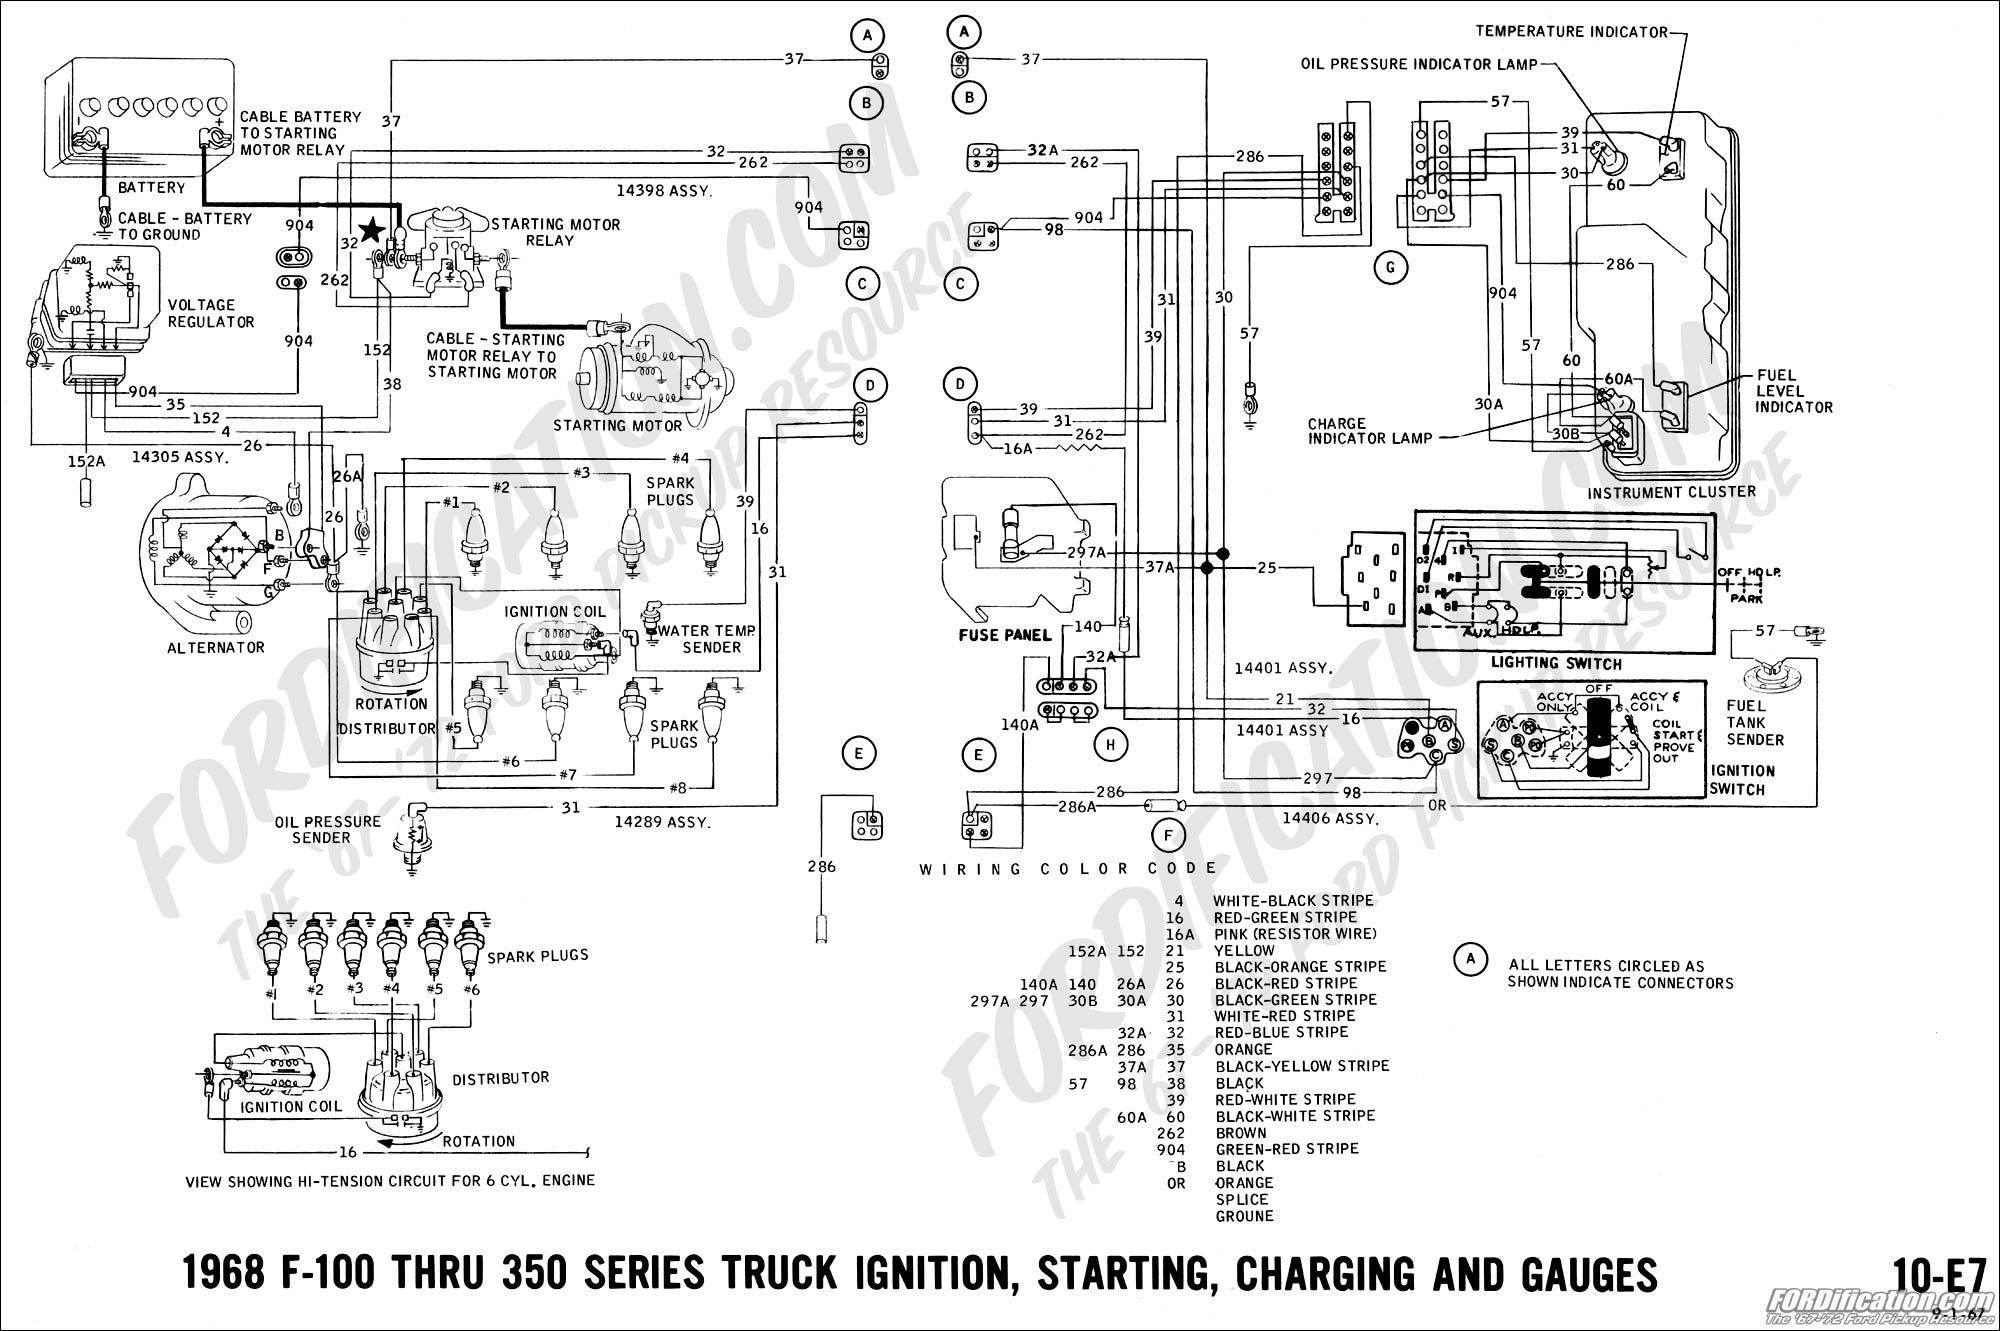 68 09 ford truck technical drawings and schematics section h wiring ford electronic ignition wiring diagram at alyssarenee.co